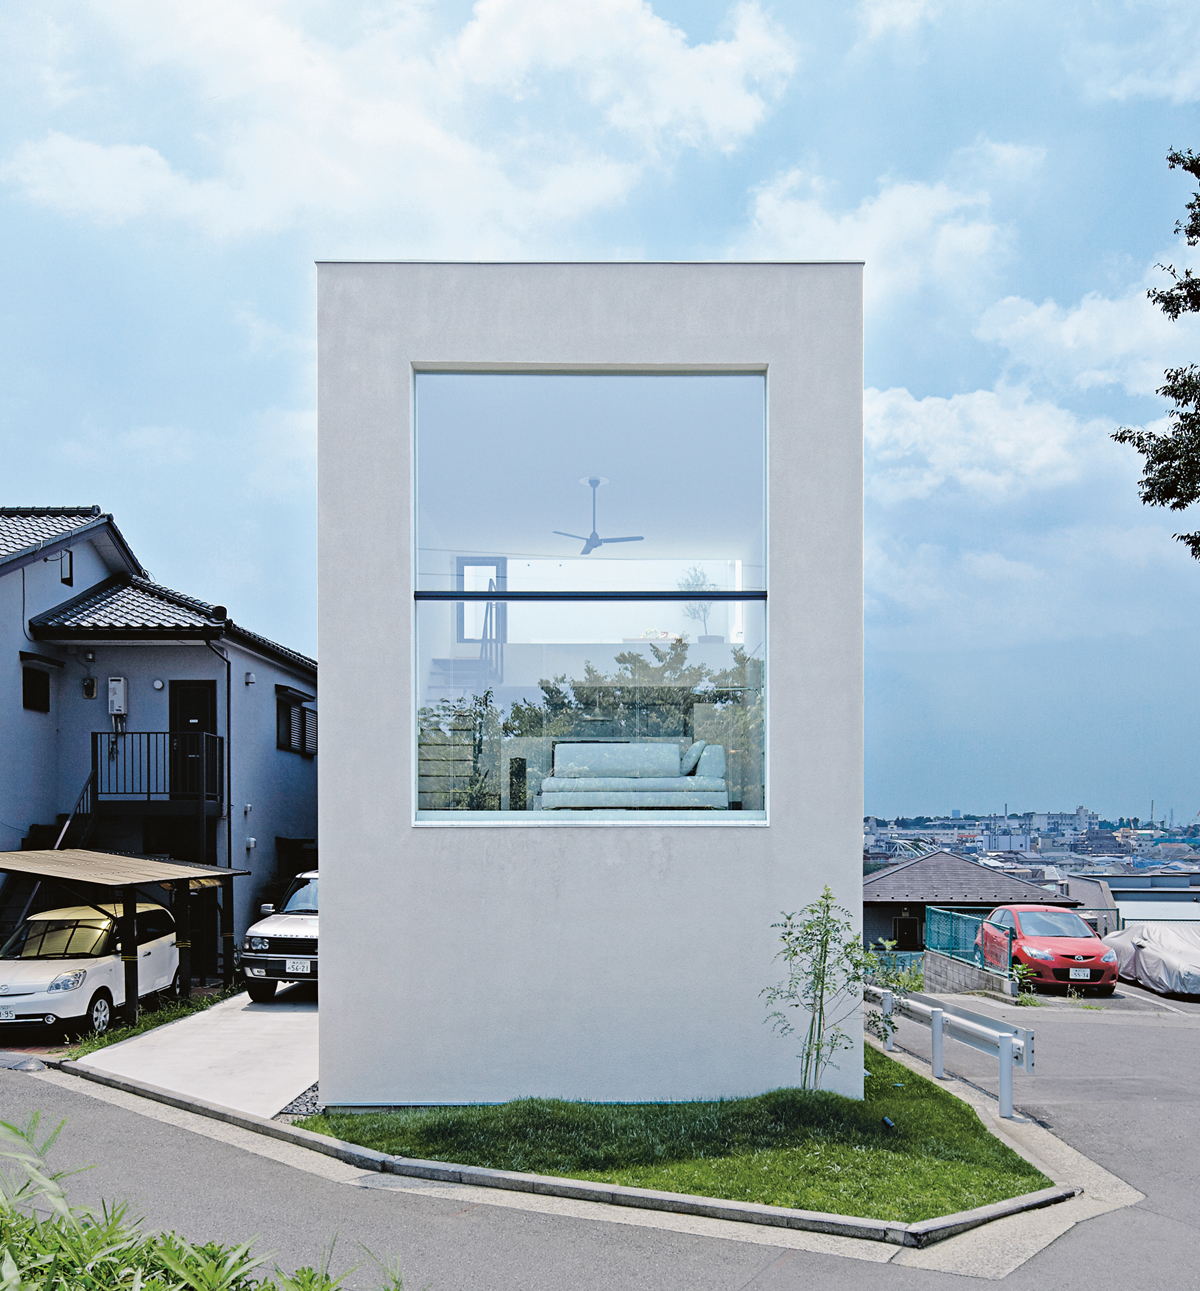 Live small japanese housing design creative review